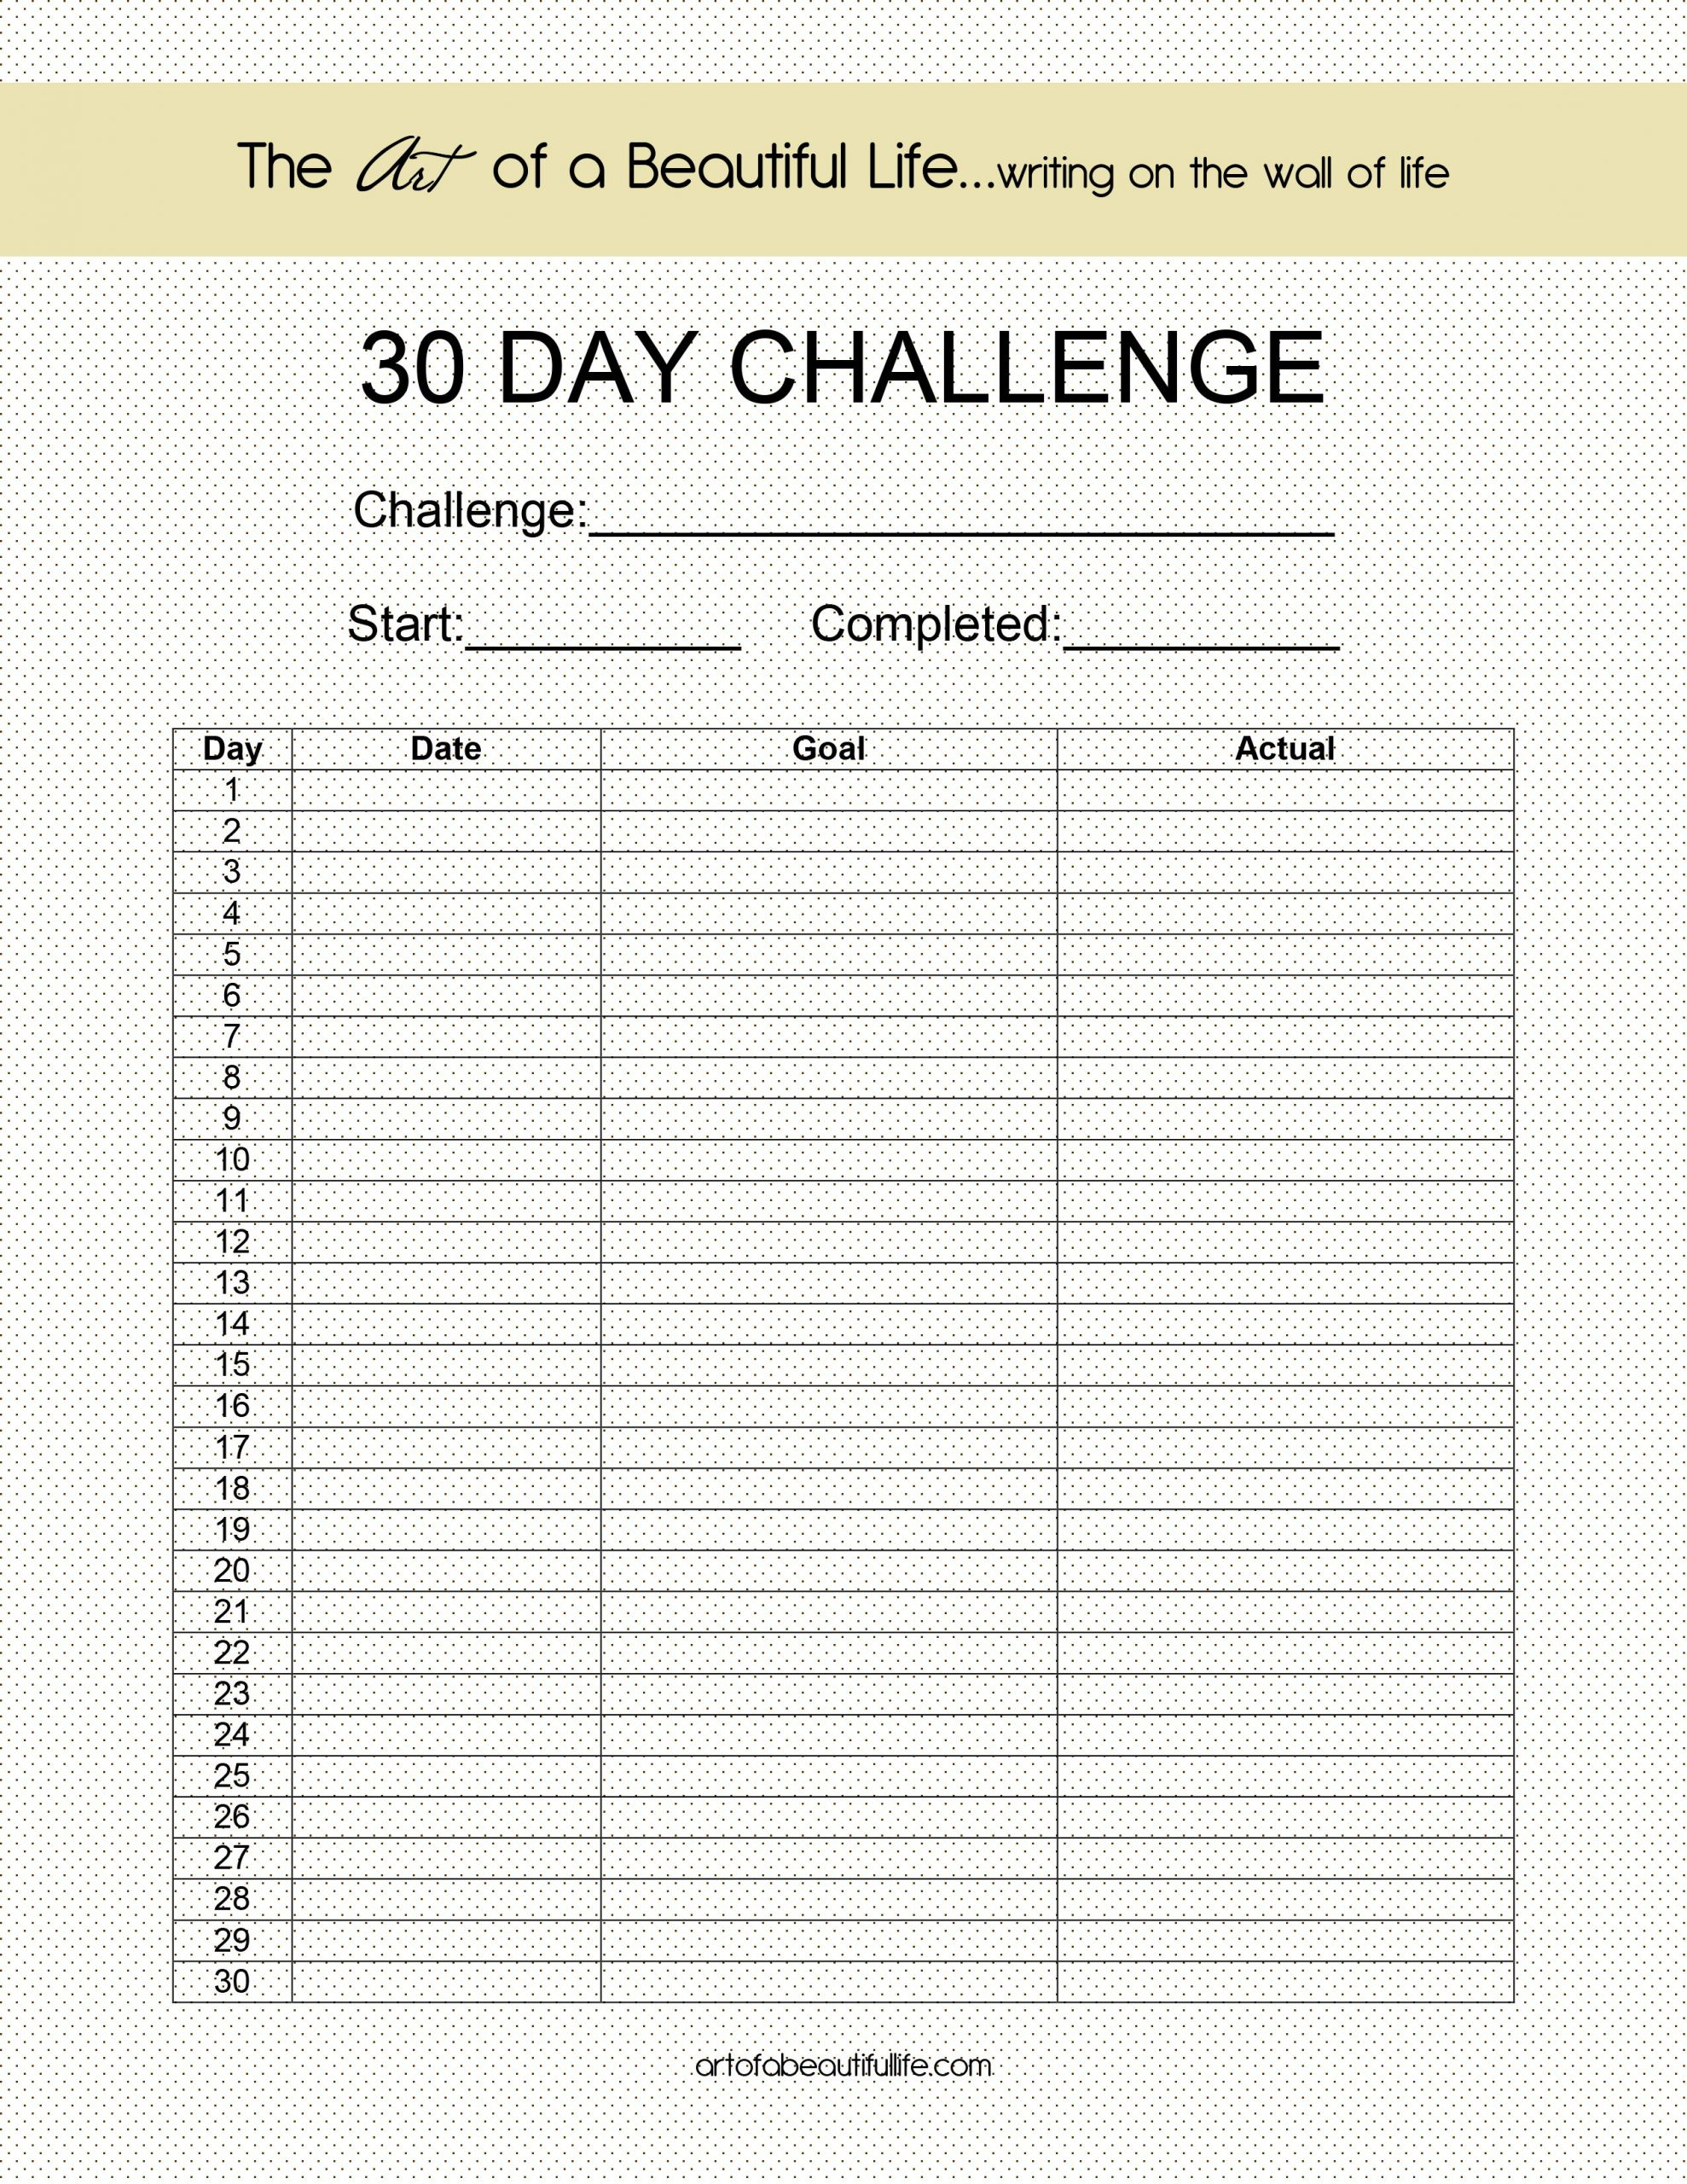 Blank 30 Day Fitness Calendar | Printable Calendar 2020-2021 within 30 Day Fitness Calendar Printable